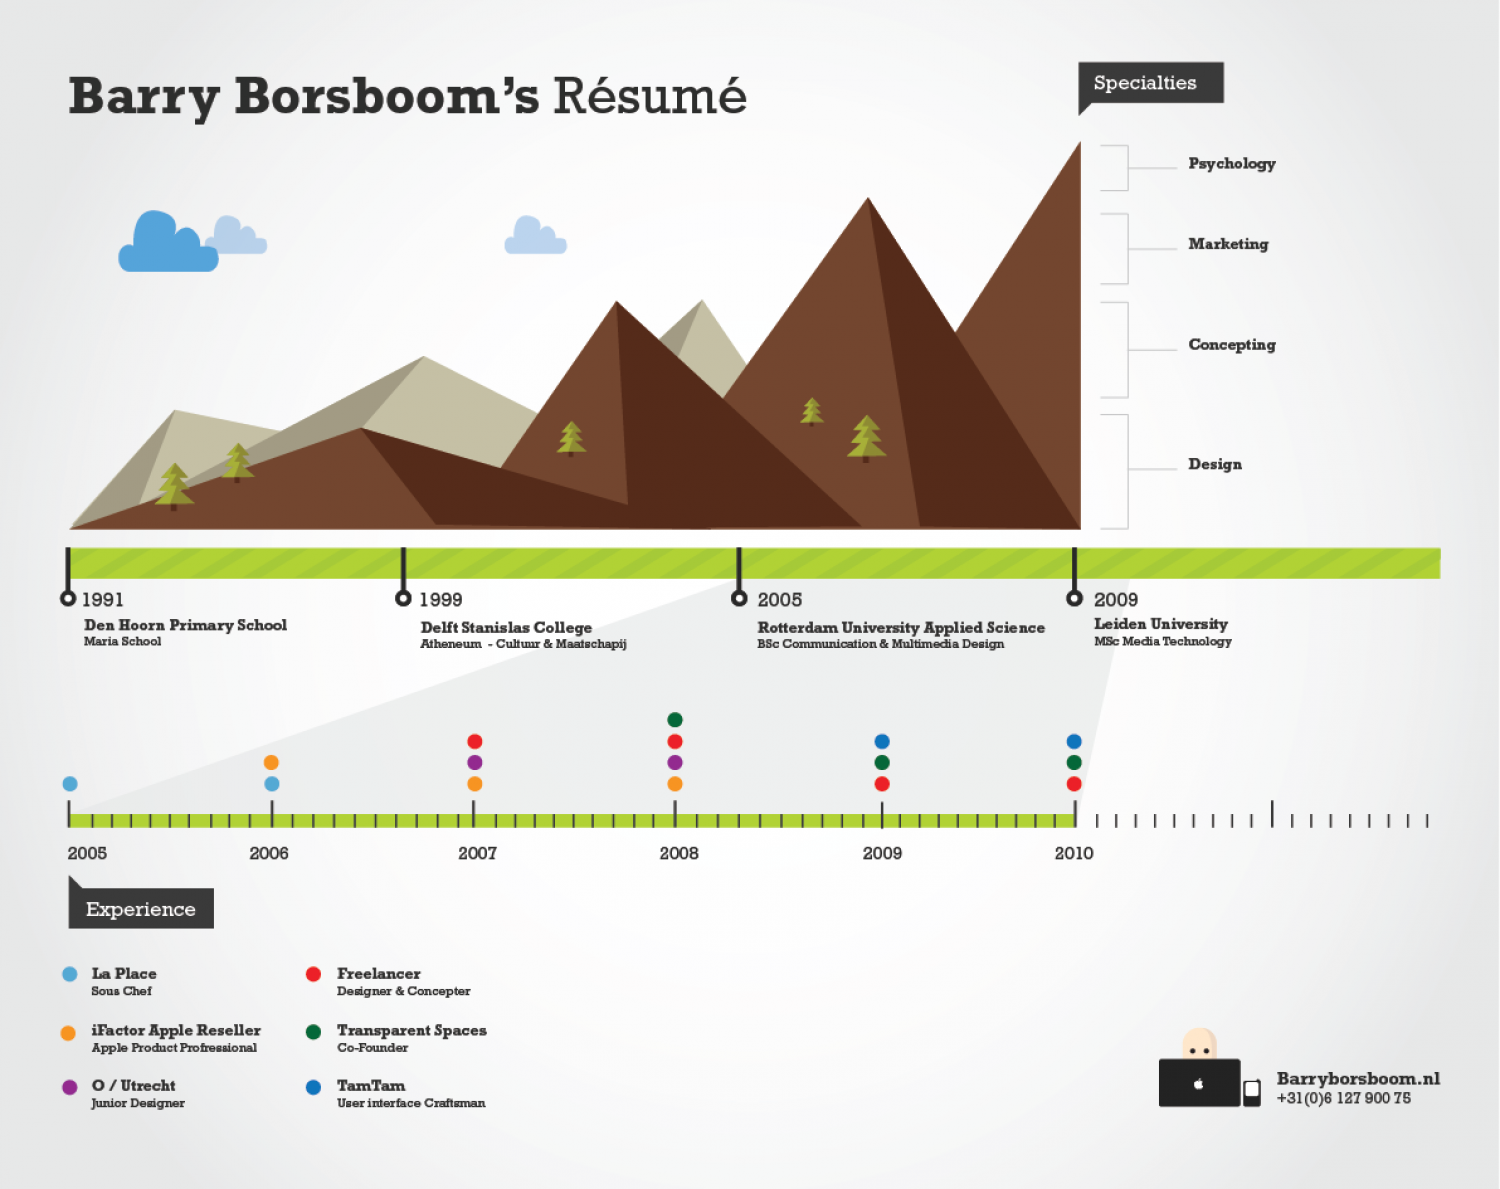 Barry Borsboom Resume Infographic